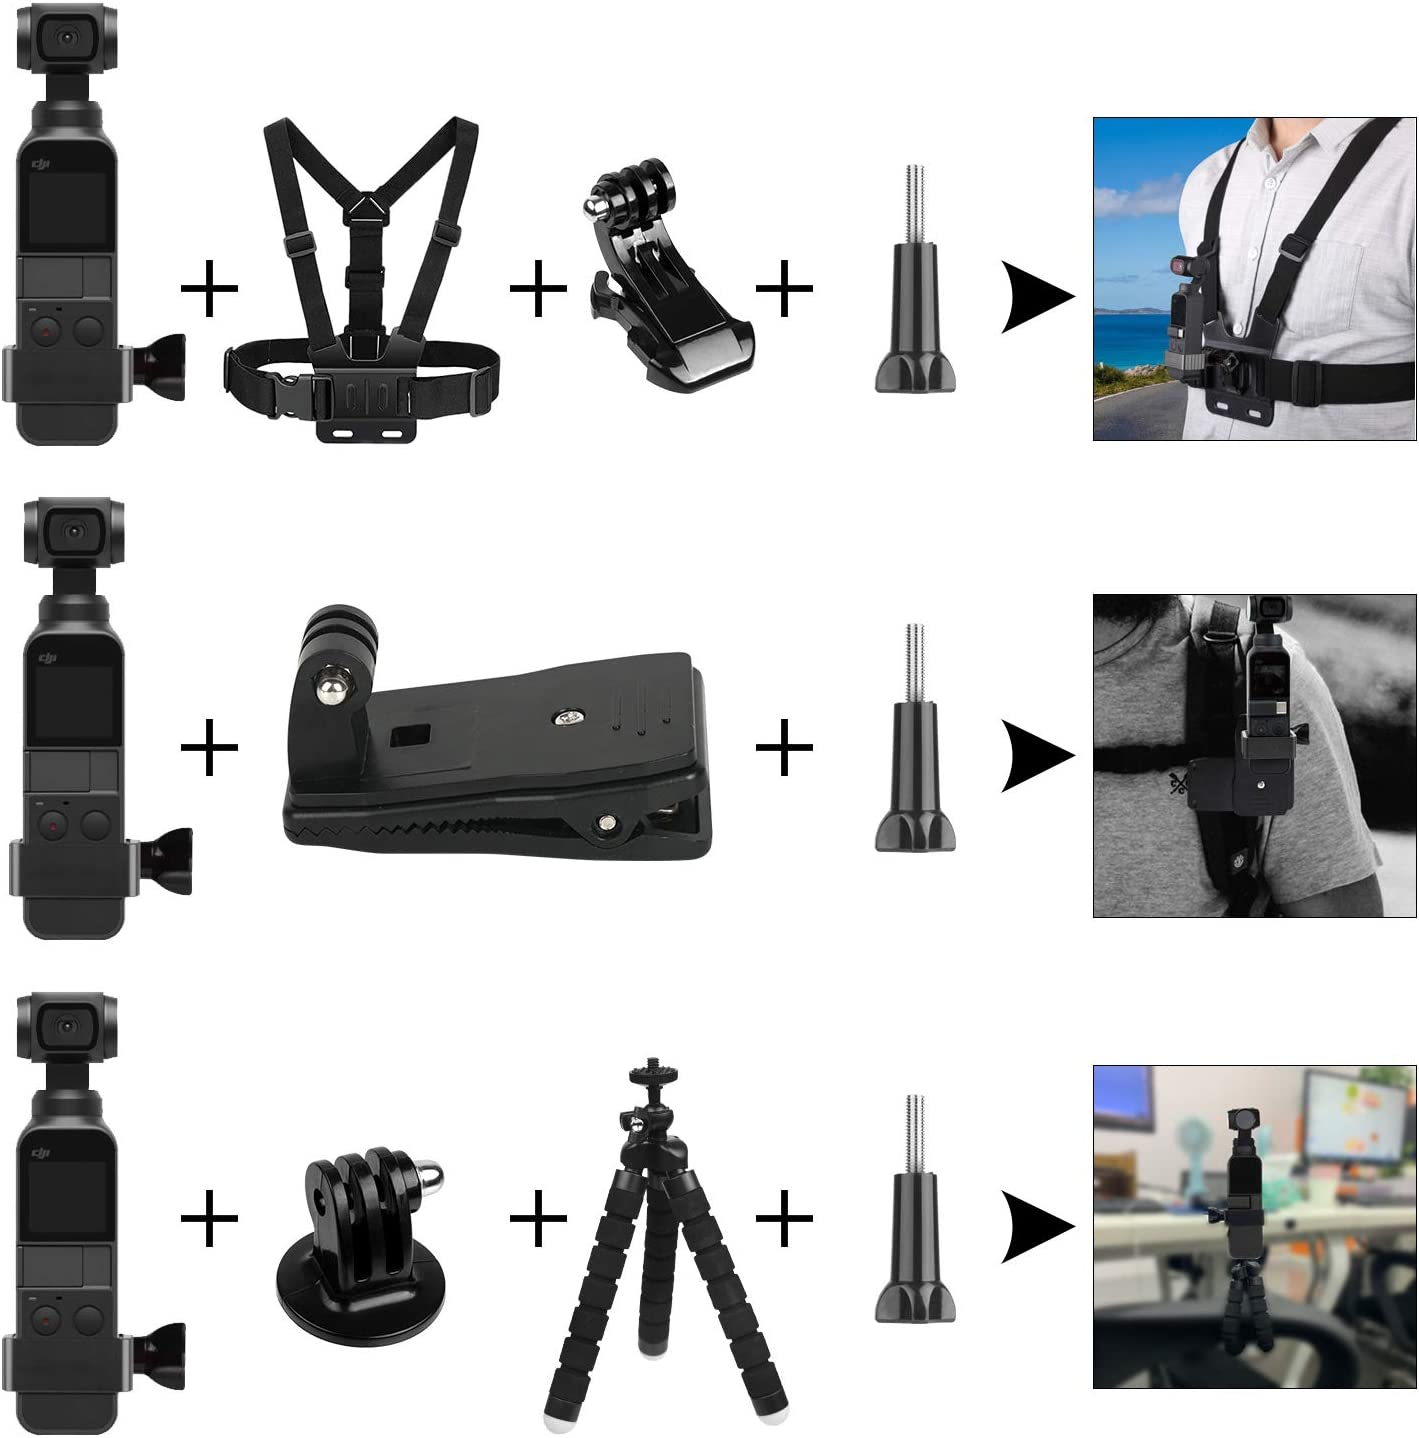 Handheld Phone Holder Chest Strap Backpack Clip Tripod Bracket Bike Mount Suction Cup Mount Compatible with OSMO Pocket Handheld Gimbal Camera KUUQA Expansion Accessories Kit for Osmo Pocket